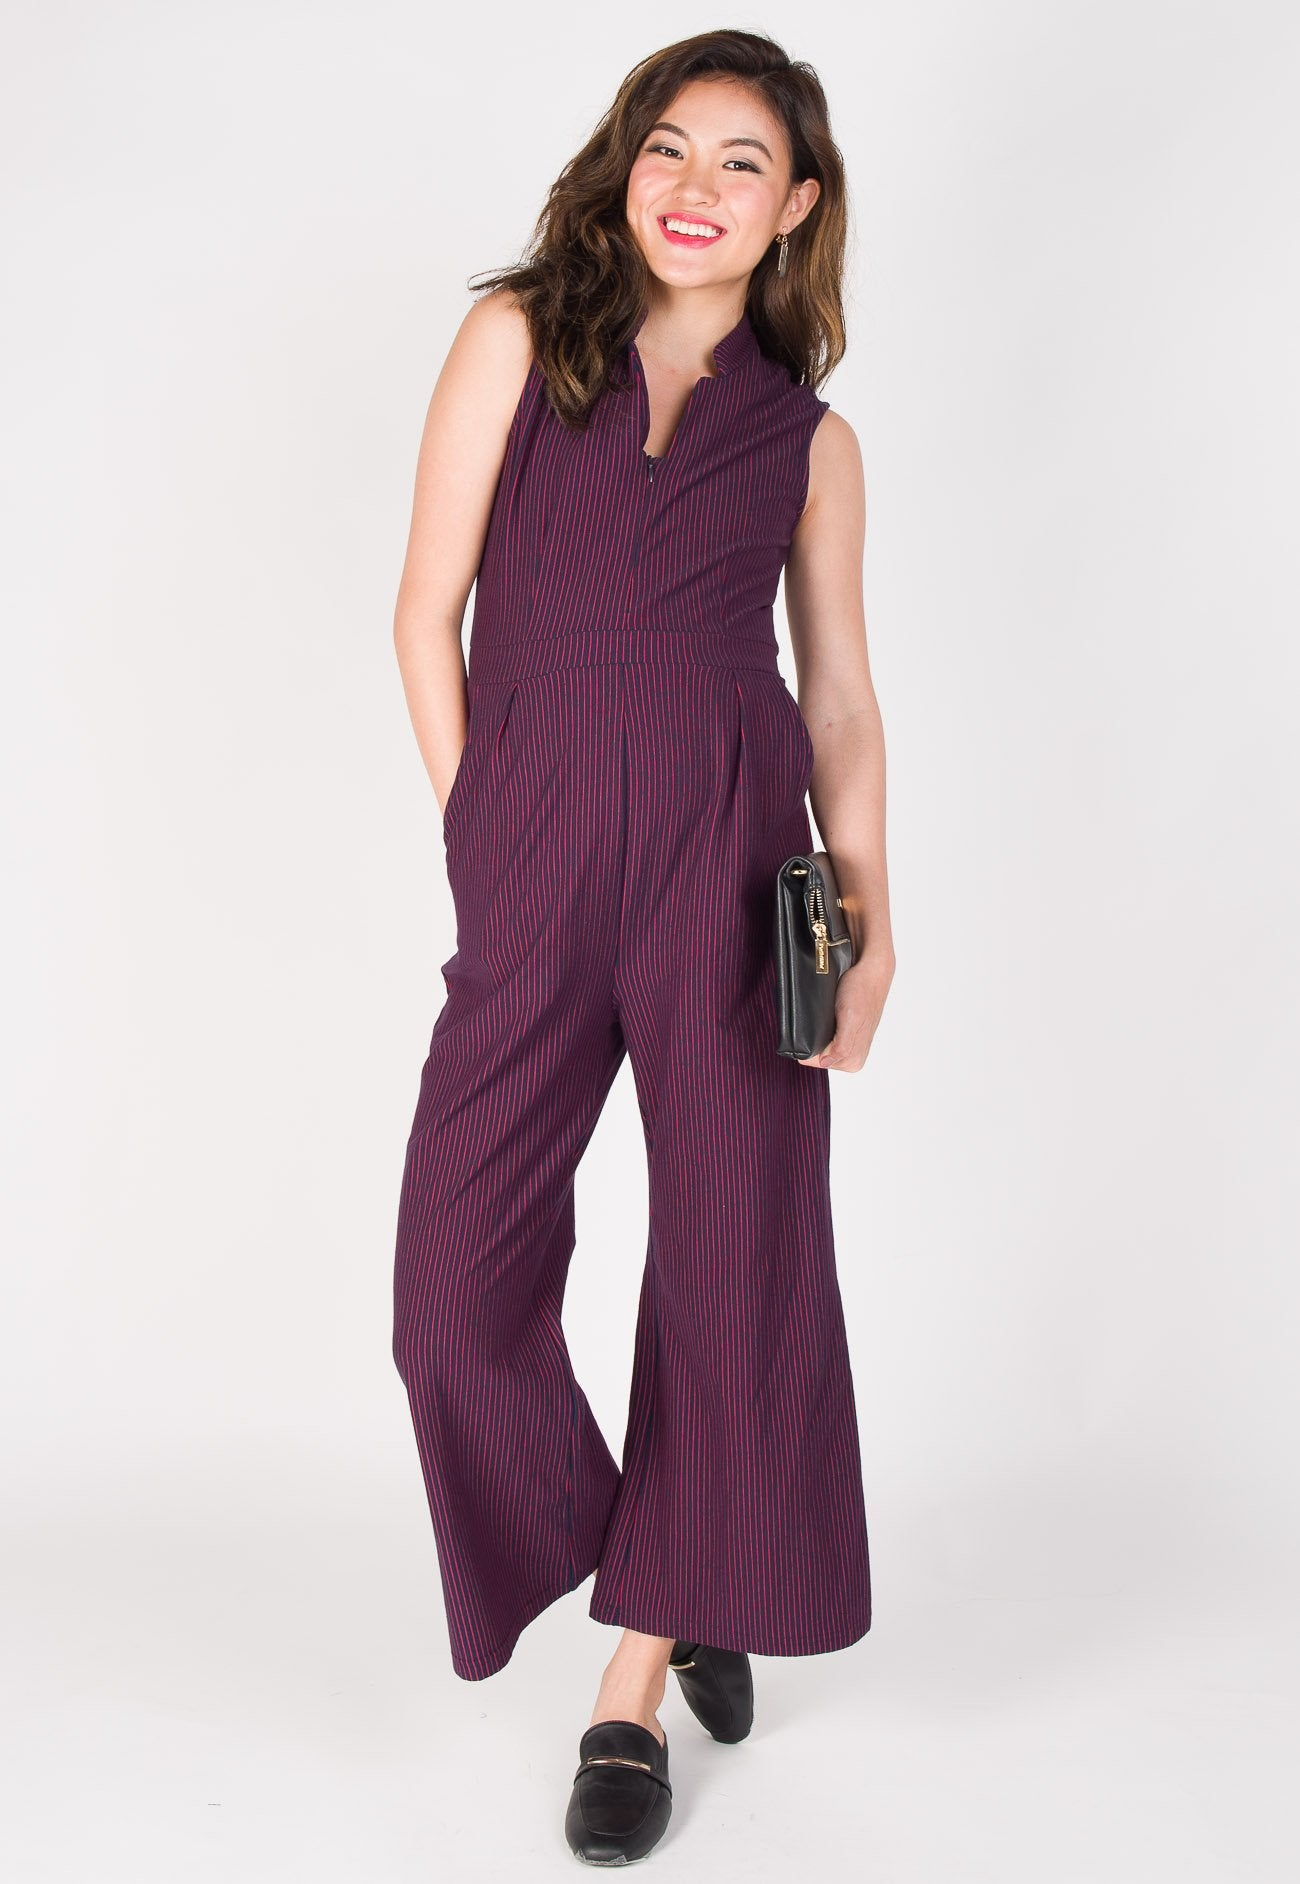 Leda Slim Fit Nursing Jumpsuit in Red  by Jump Eat Cry - Maternity and nursing wear